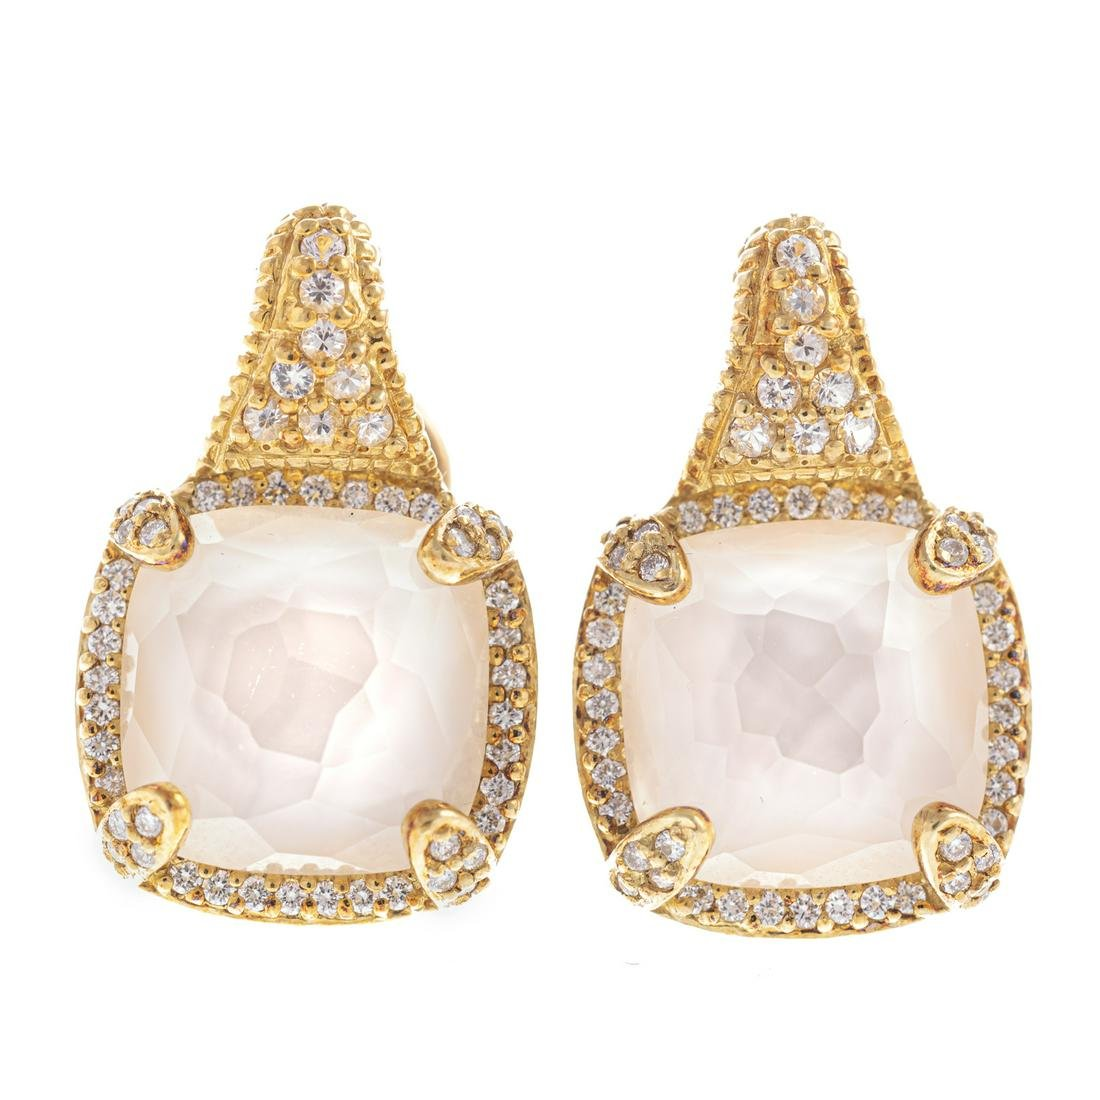 A Pair of Judith Ripka Diamond Earrings